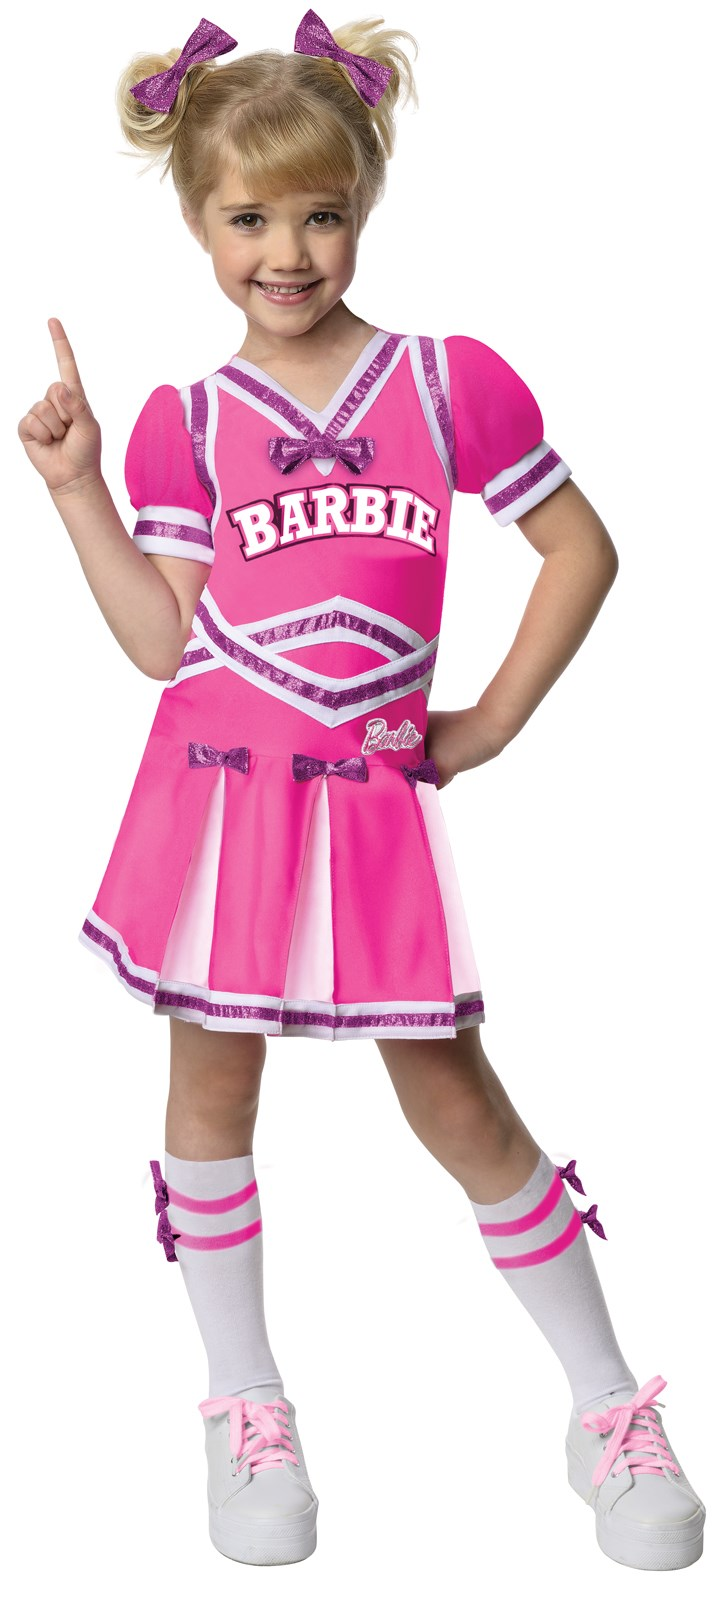 Image of Barbie - Cheerleader Toddler / Child Costume